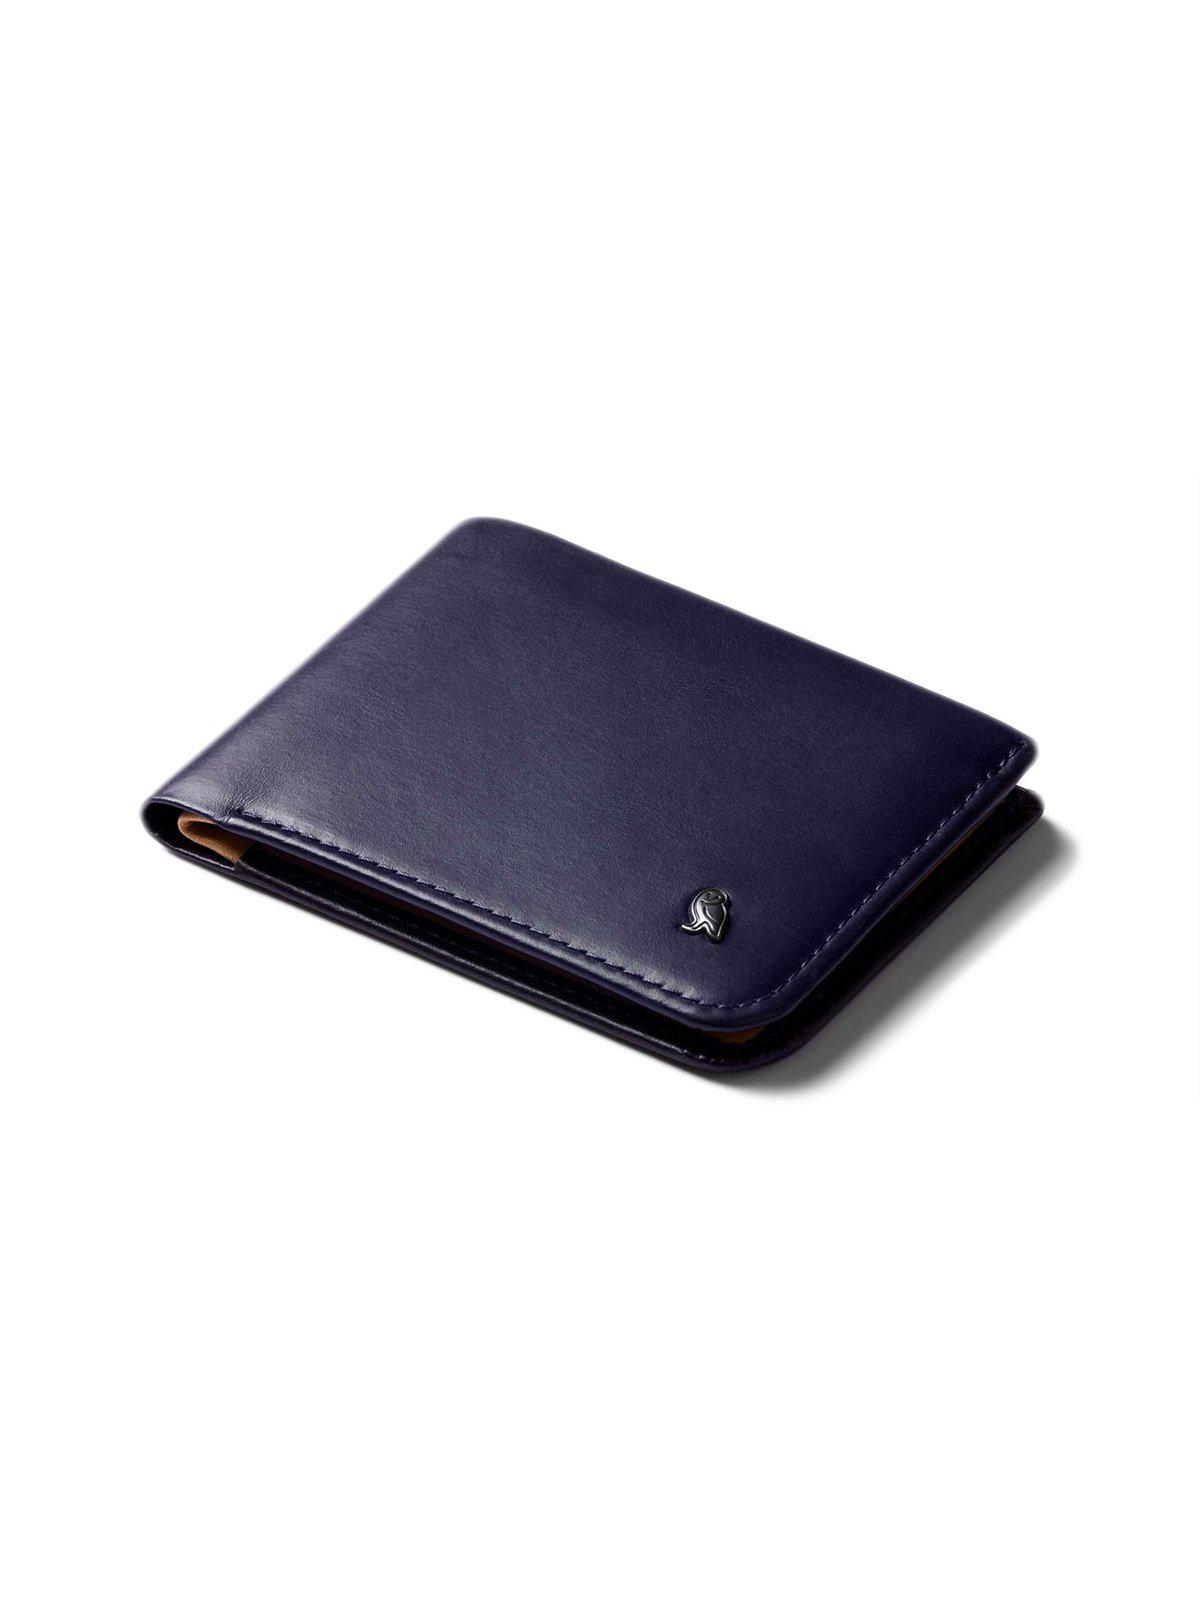 Bellroy Hide and Seek Wallet Navy RFID with GIFT BOX - MORE by Morello Indonesia